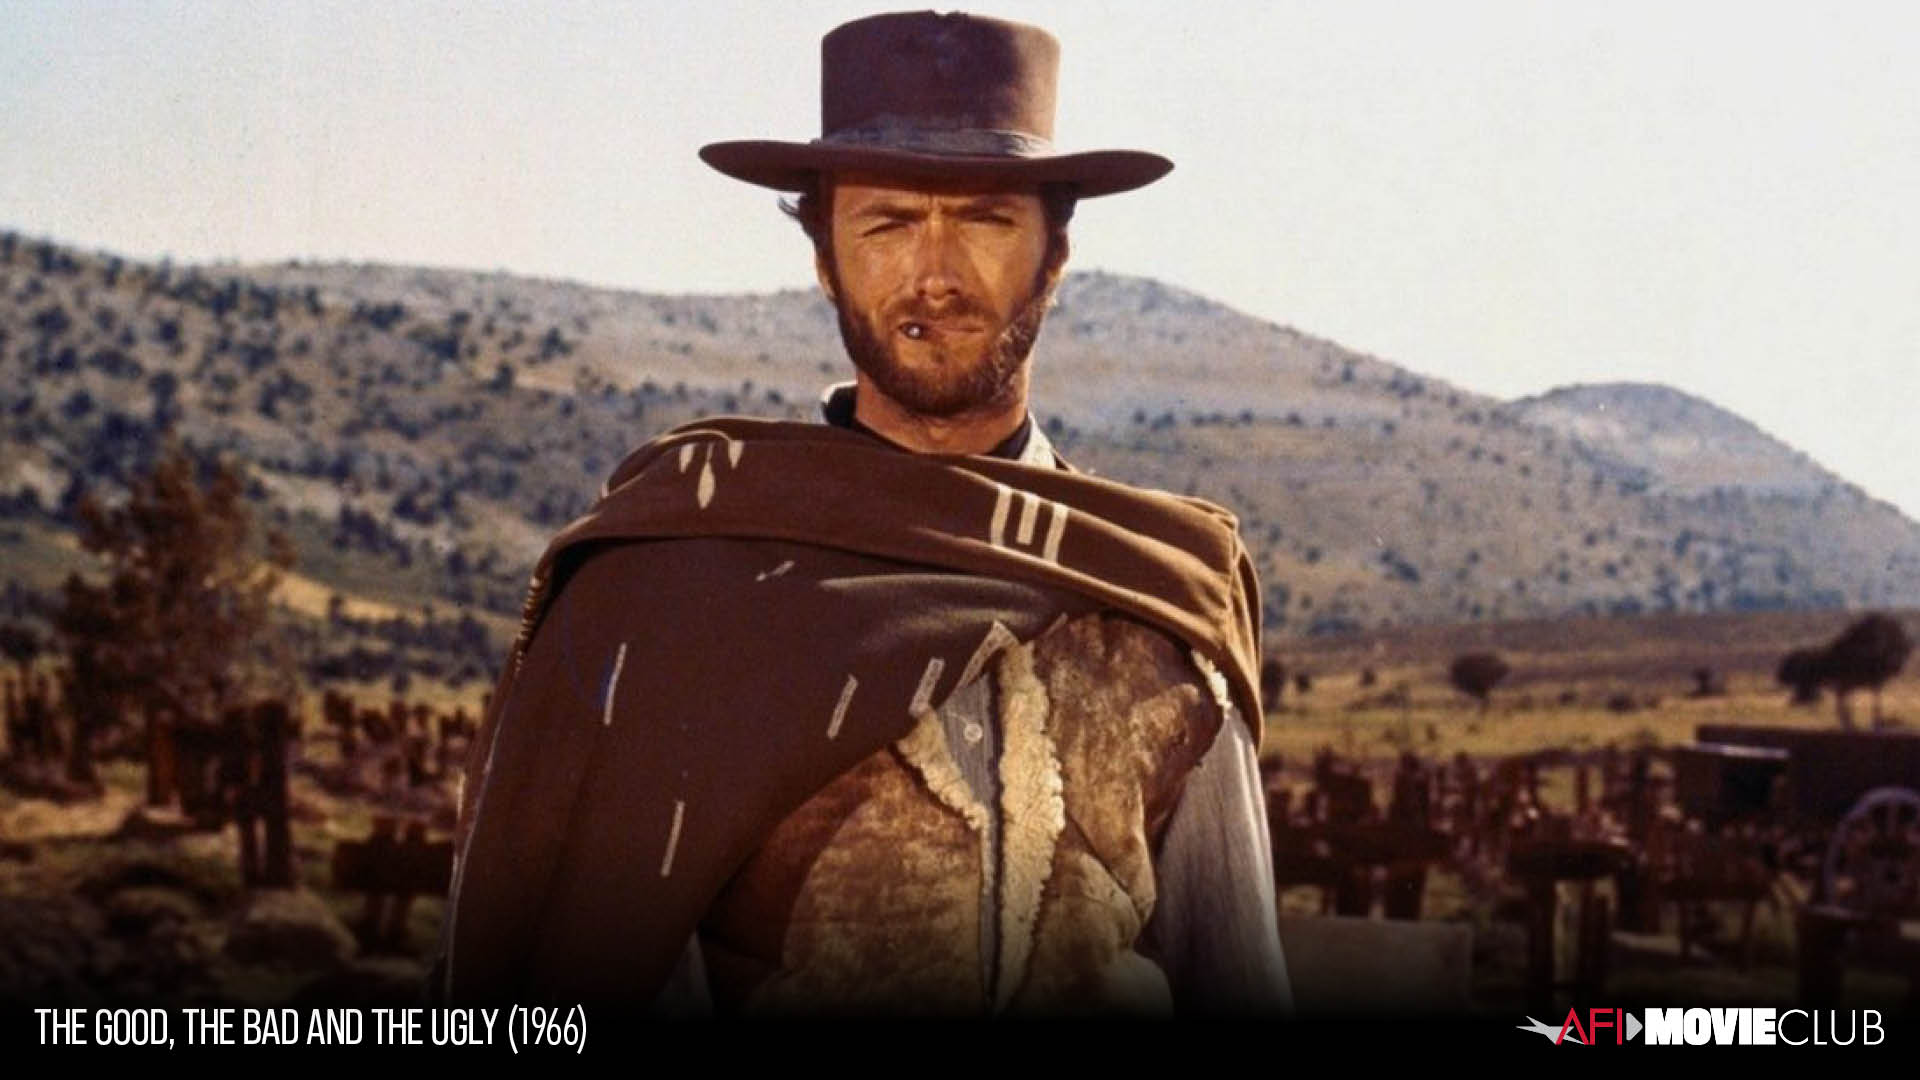 The Good, the Bad and the Ugly (1966) - Western